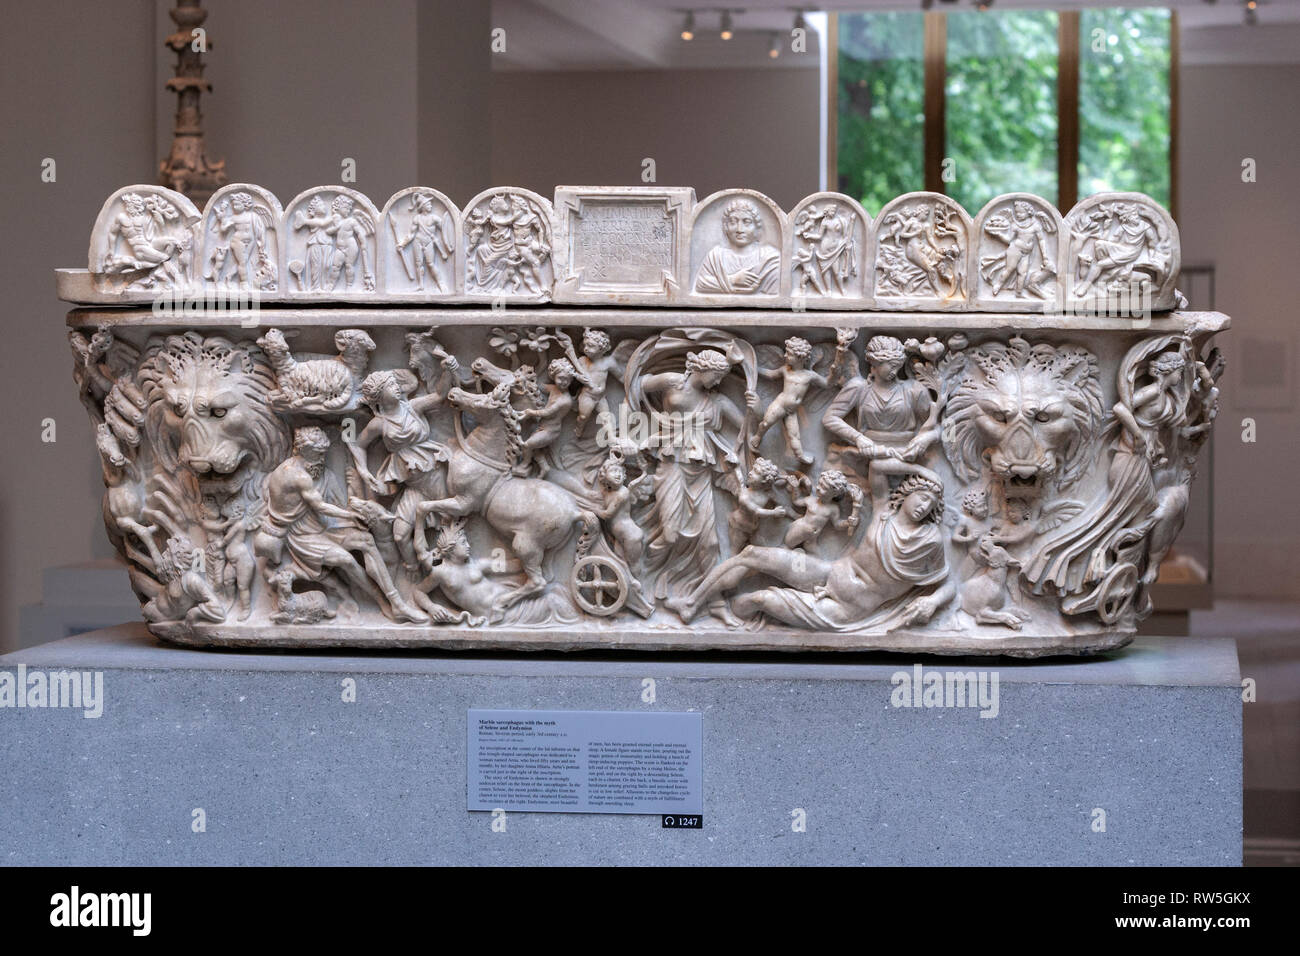 A Roman lenos-shaped marble sarcophagus with a myth of Selene and Endymion. The Metropolitan Museum of Art, Manhattan, New York USA - Stock Image